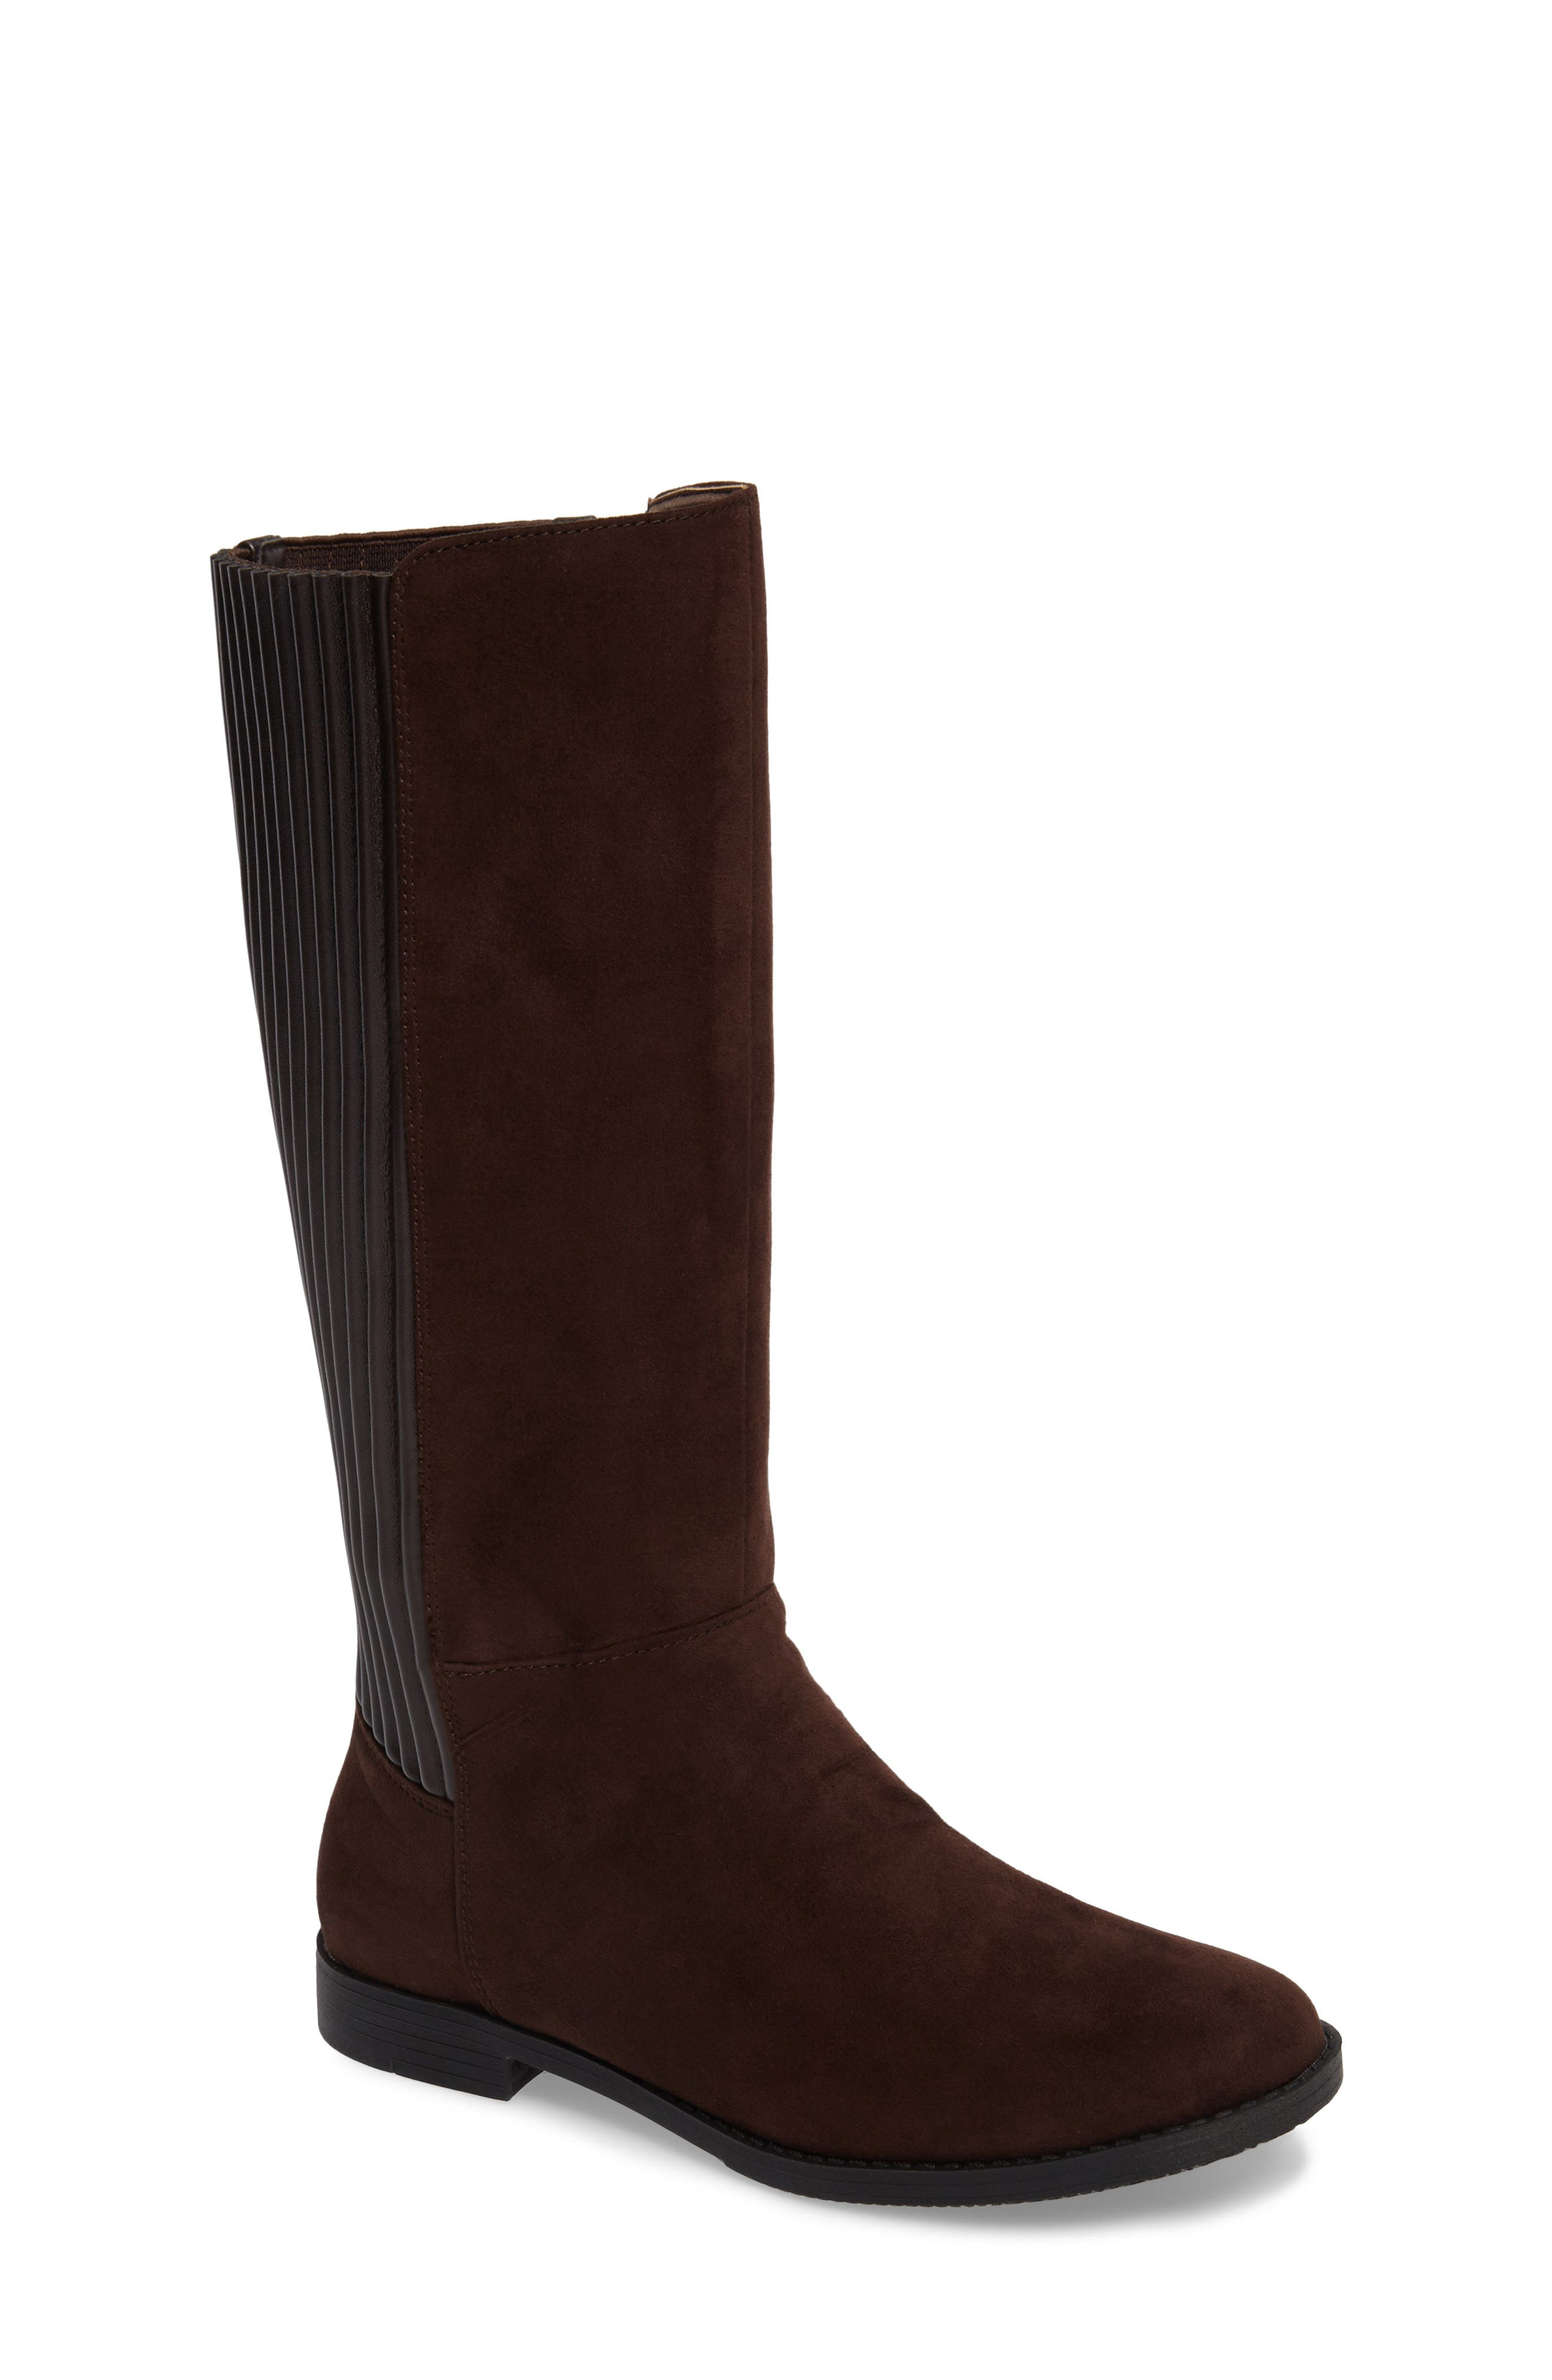 Alternate Image 1 Selected - Kenneth Cole New York Kennedy Pleated Riding Boot (Toddler, Little Kid & Big Kid)